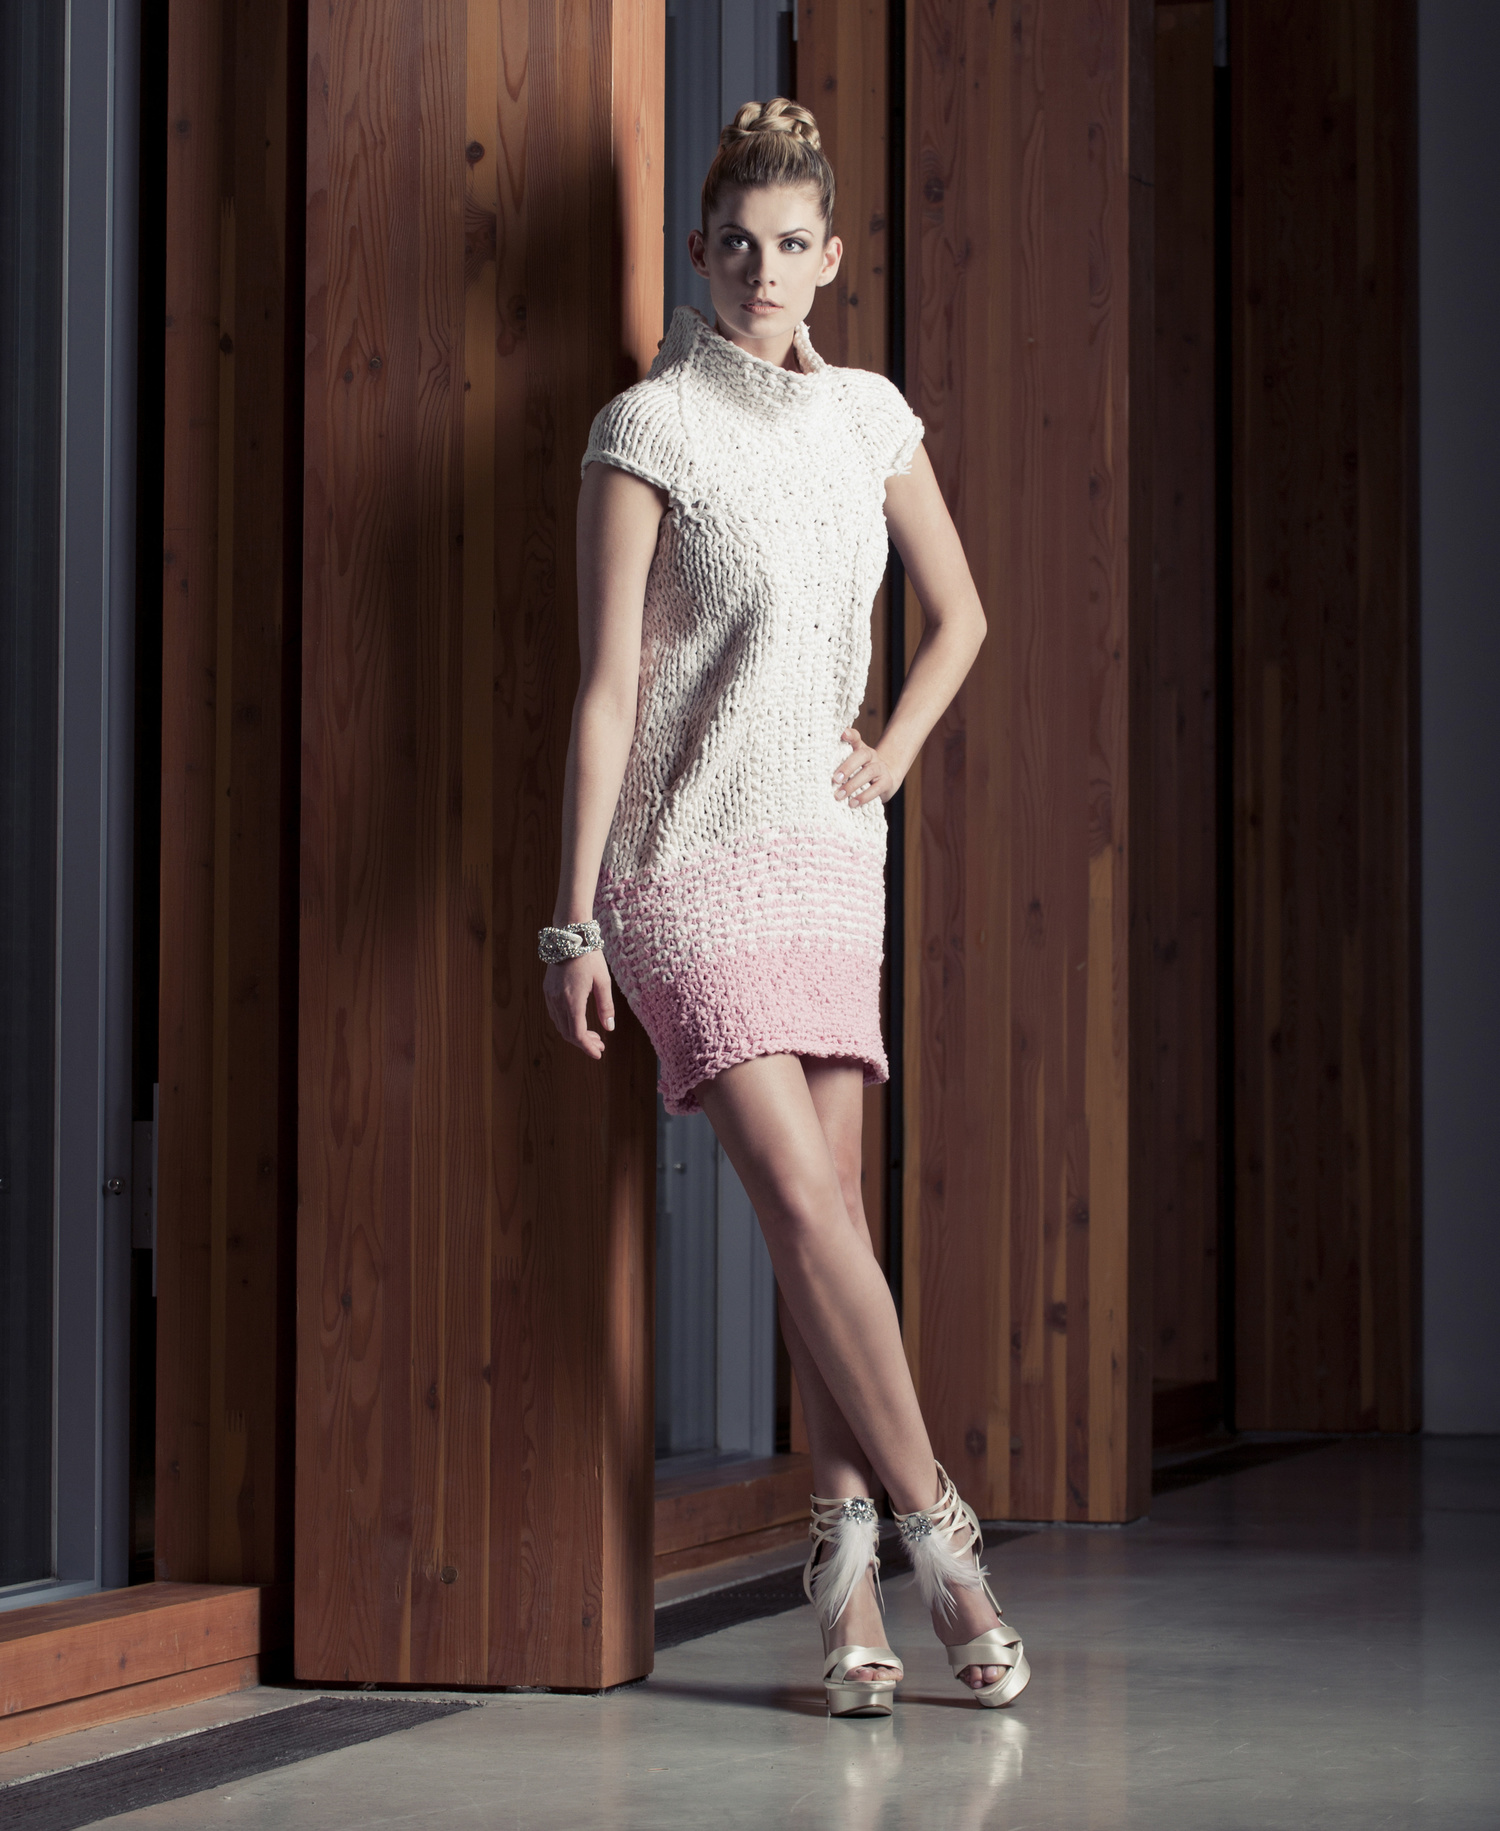 White-Cashmere-Collection-2013-DylaniumKnits-by-Dylan-Uscher-Photographer-Caitlin-Cronenberg.jpg